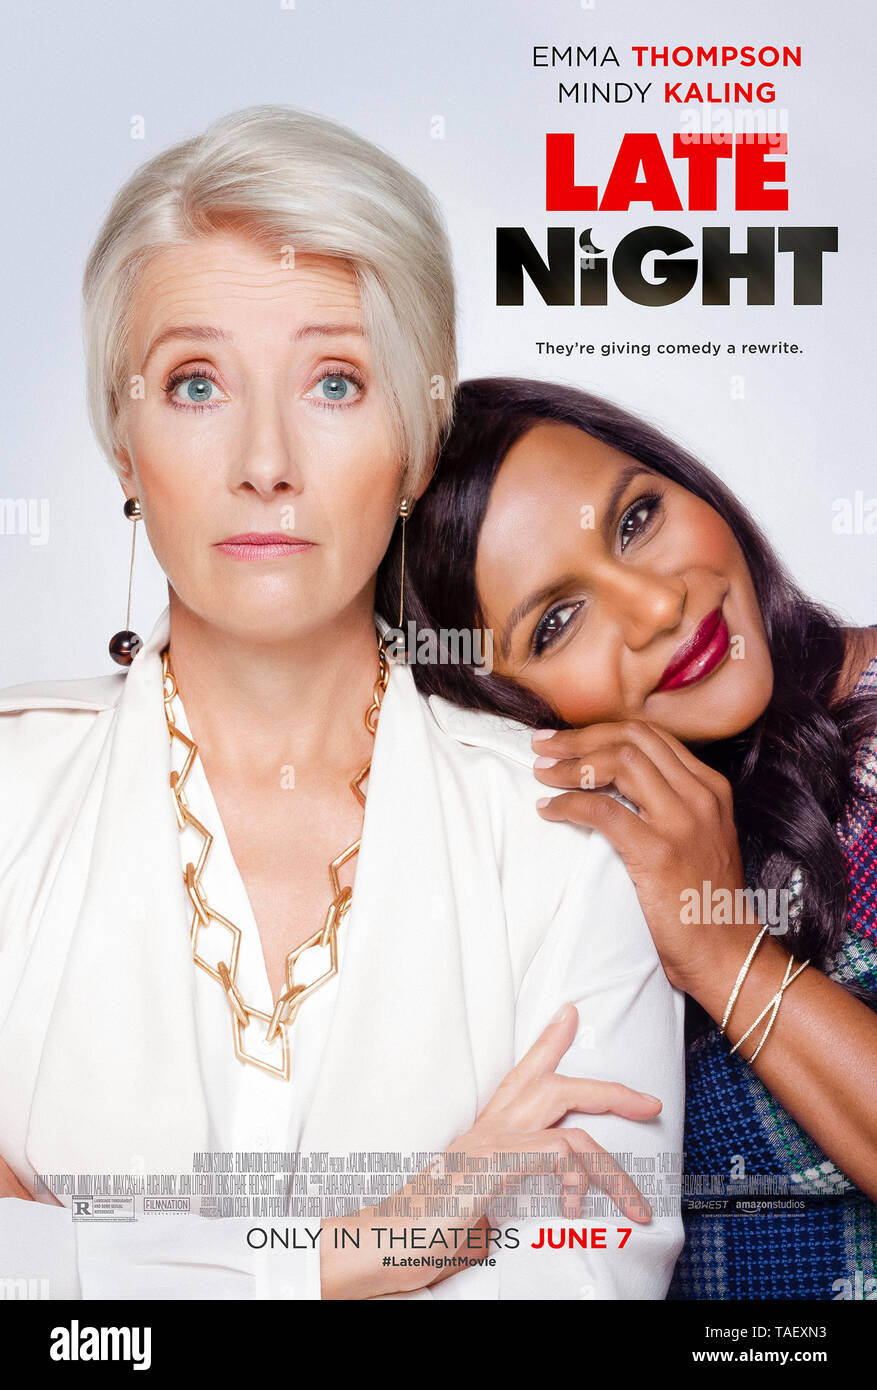 Late Night (2019) directed by Nisha Ganatra and starring  Emma Thompson, Mindy Kaling and John Lithgow. - Stock Image